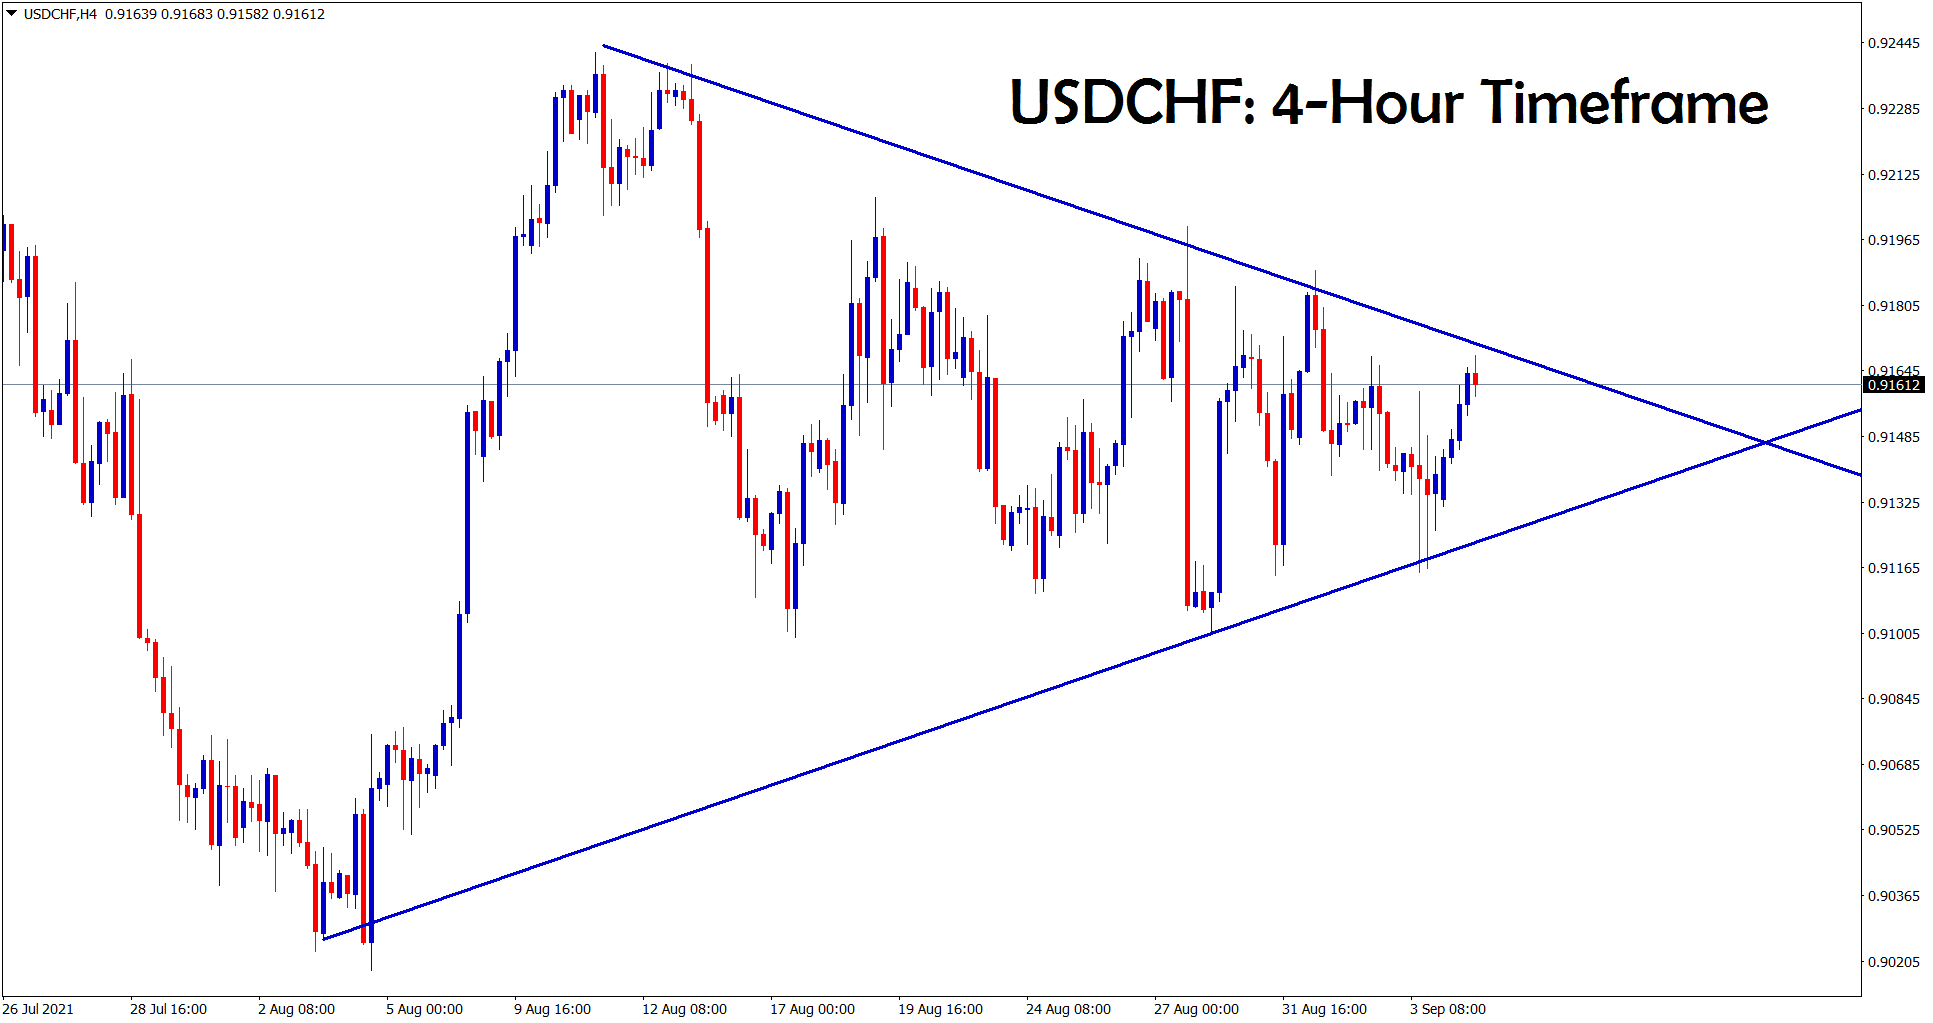 USDCHF has formed a symmetrical triangle pattern wait for the breakout